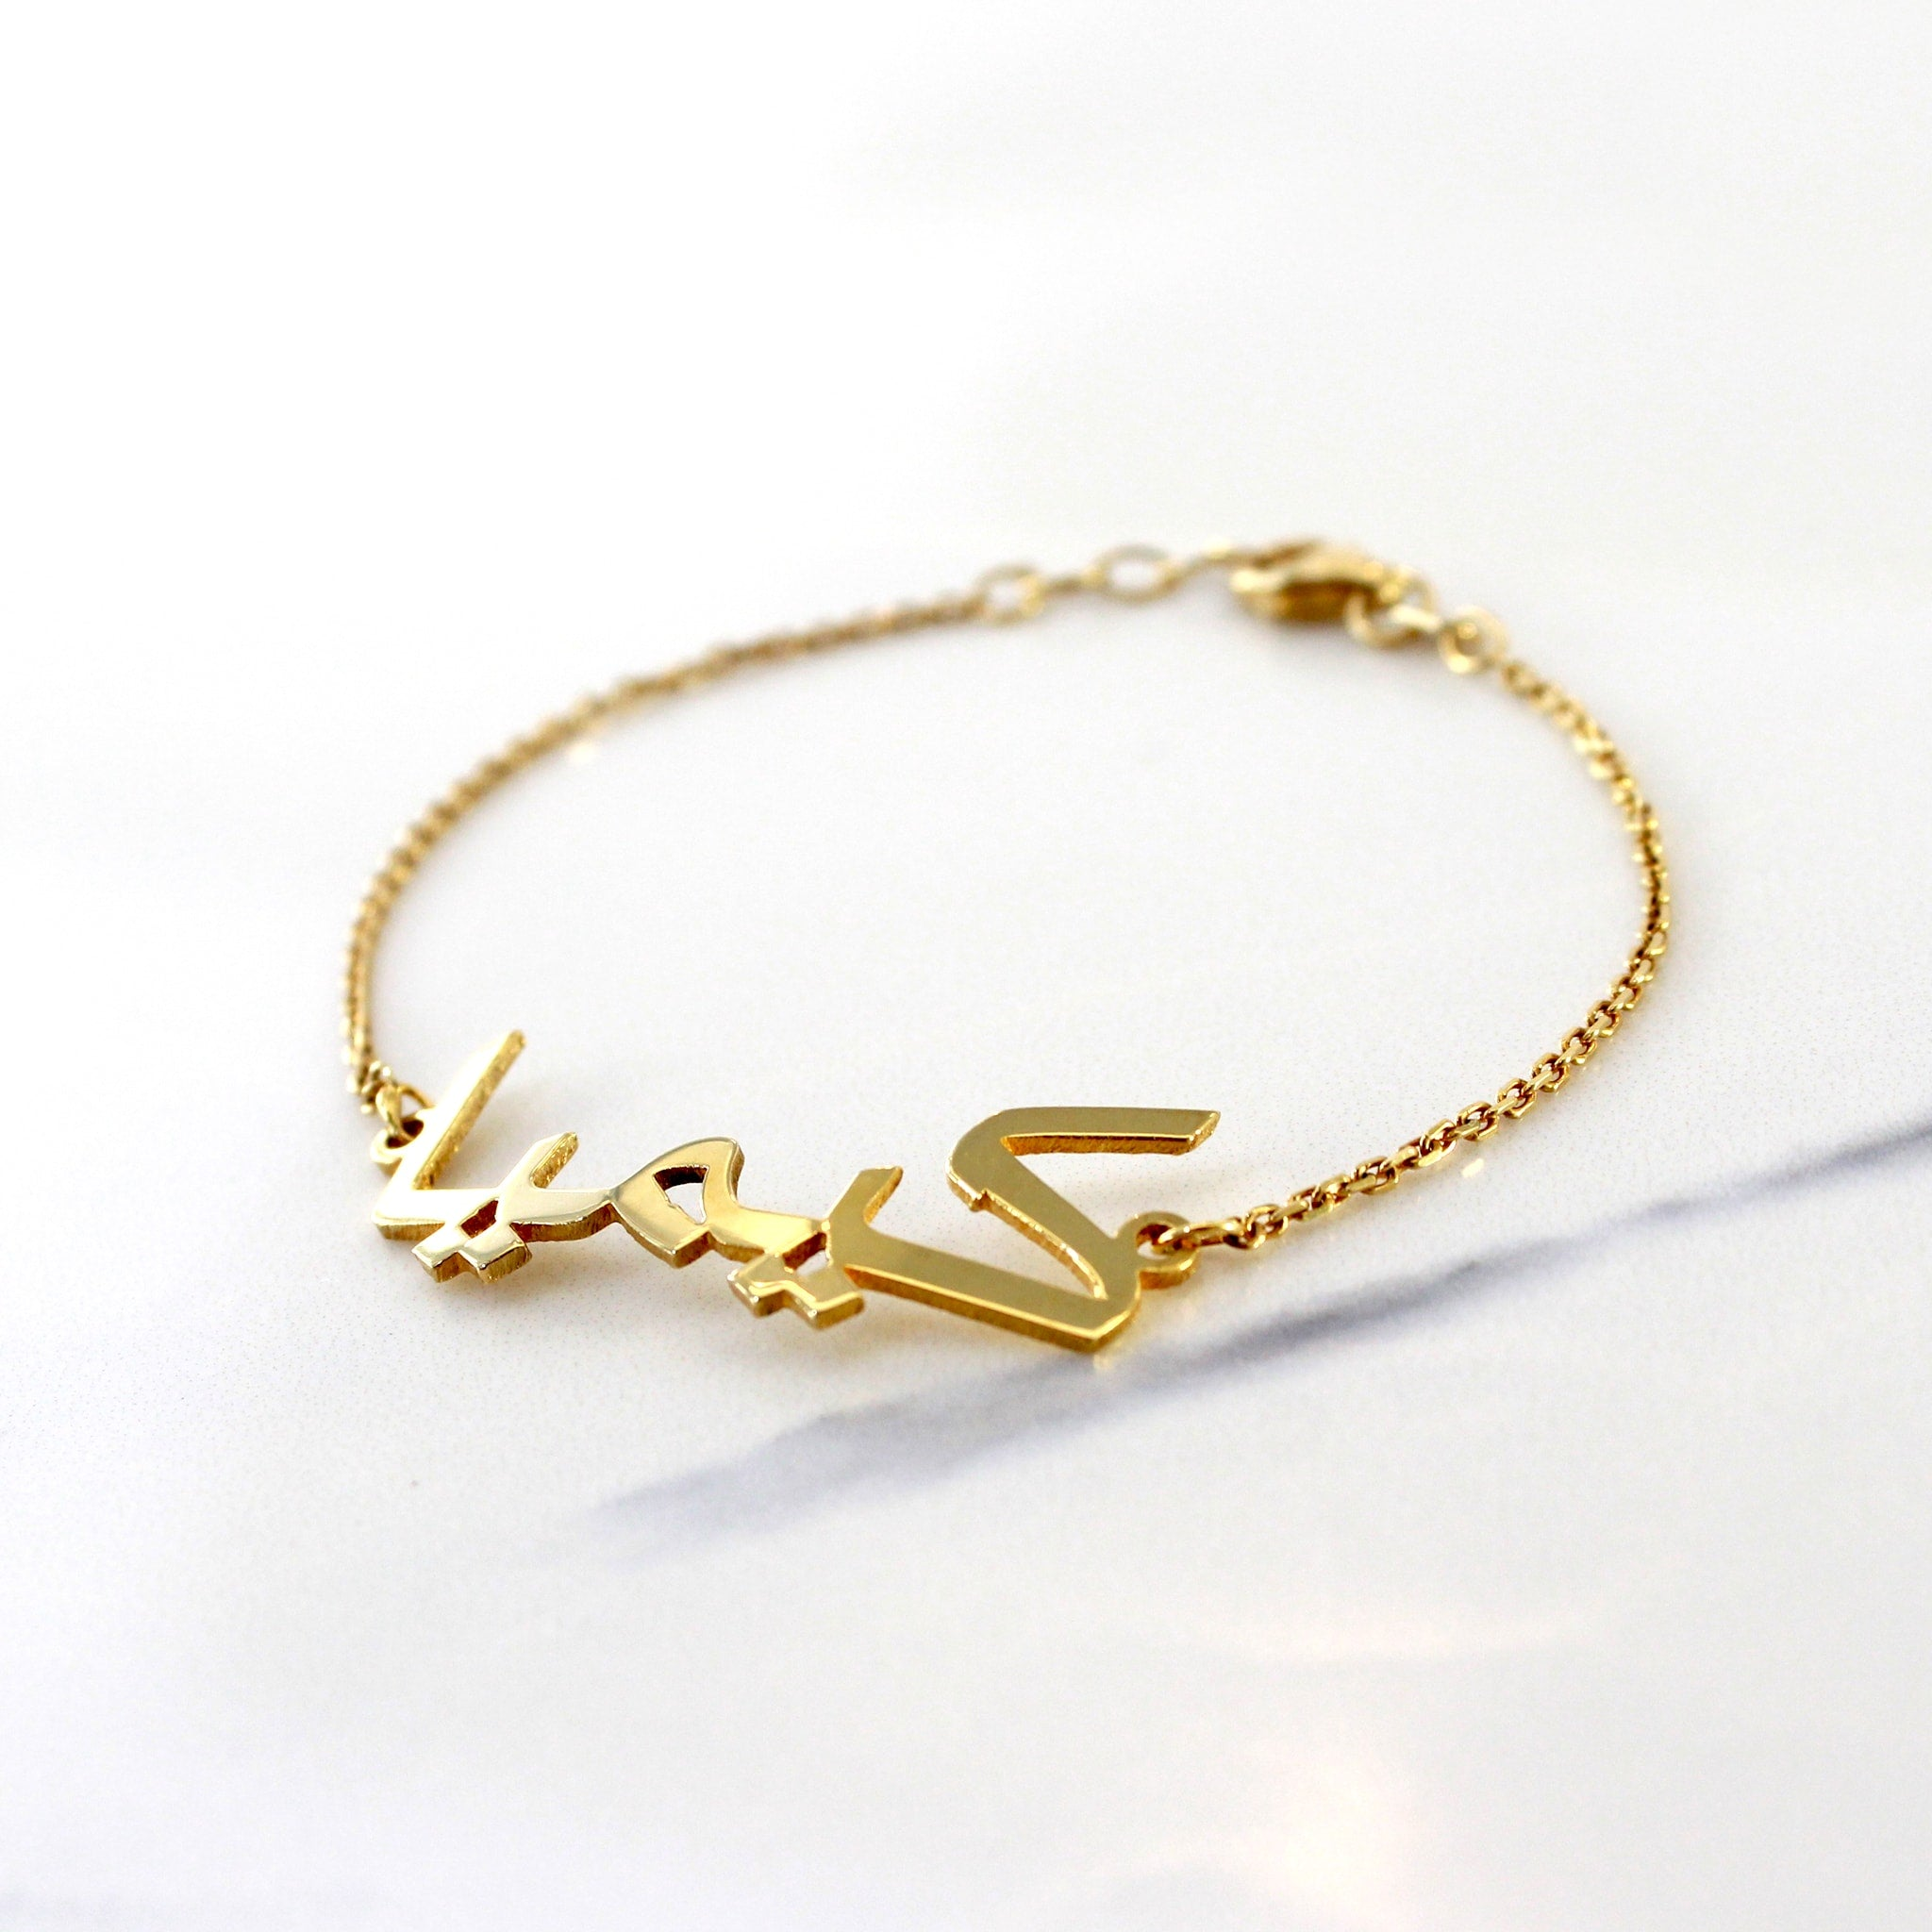 Persian or Arabic Name Bracelet - PRINT Calligraphy